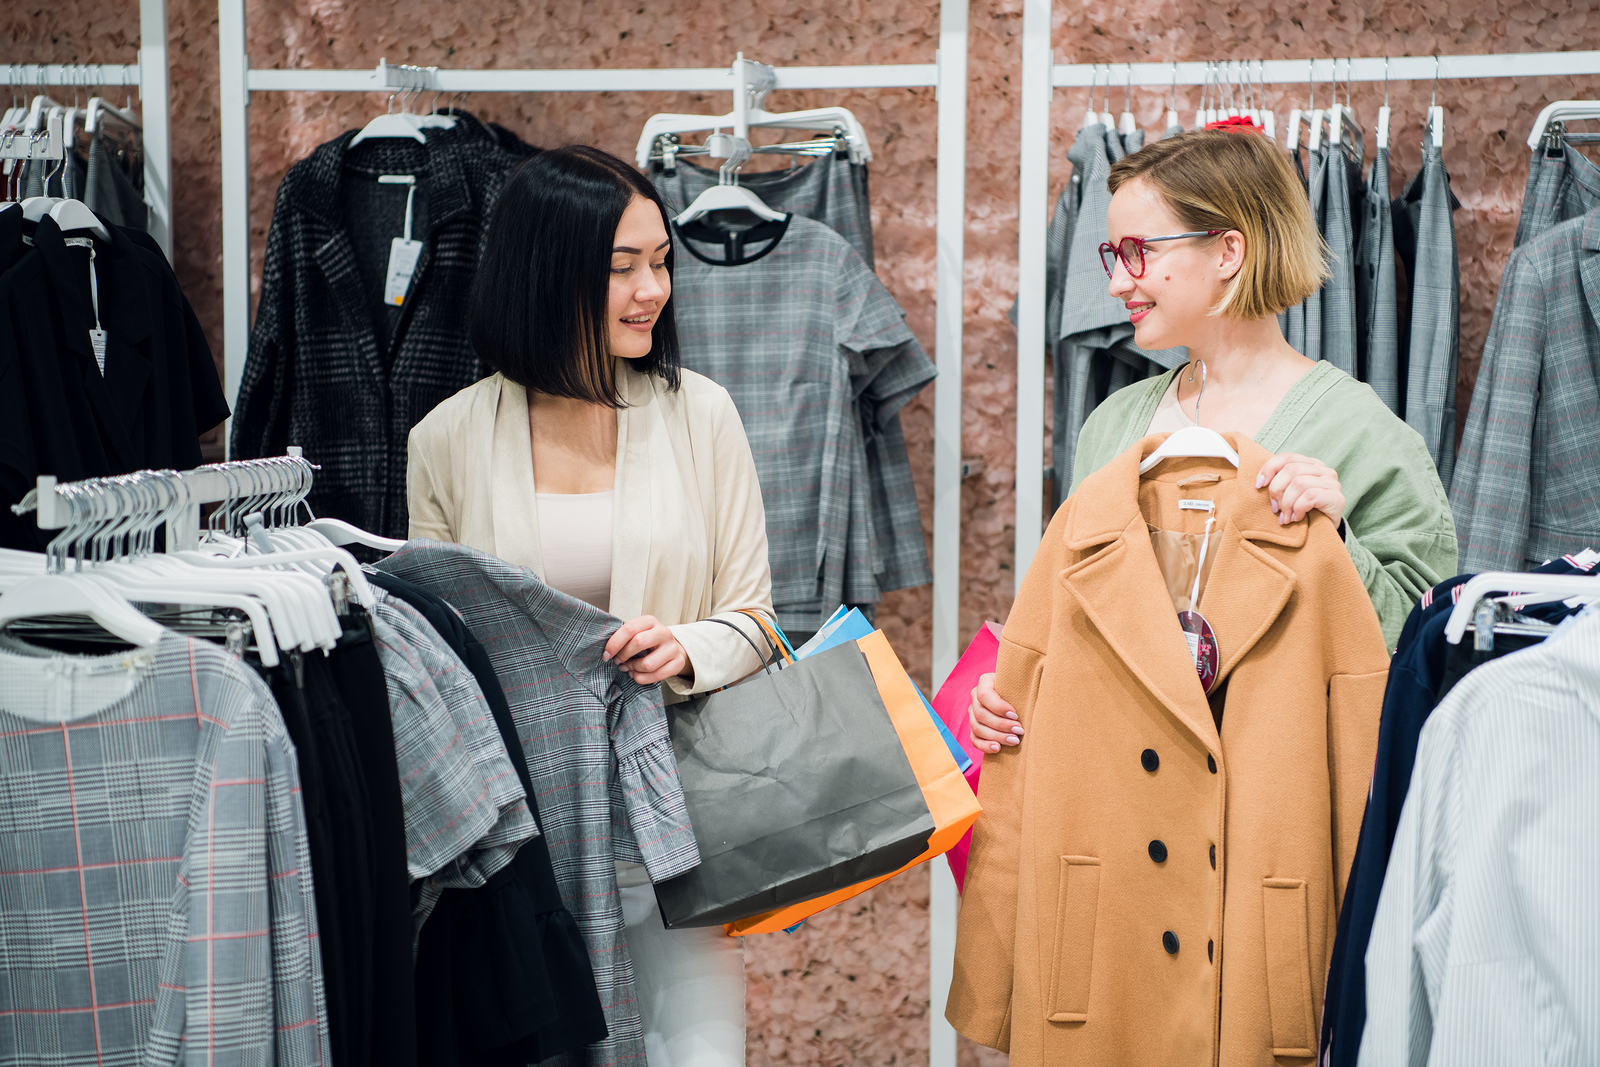 A smiling retail associate helps a customer in a clothing store.